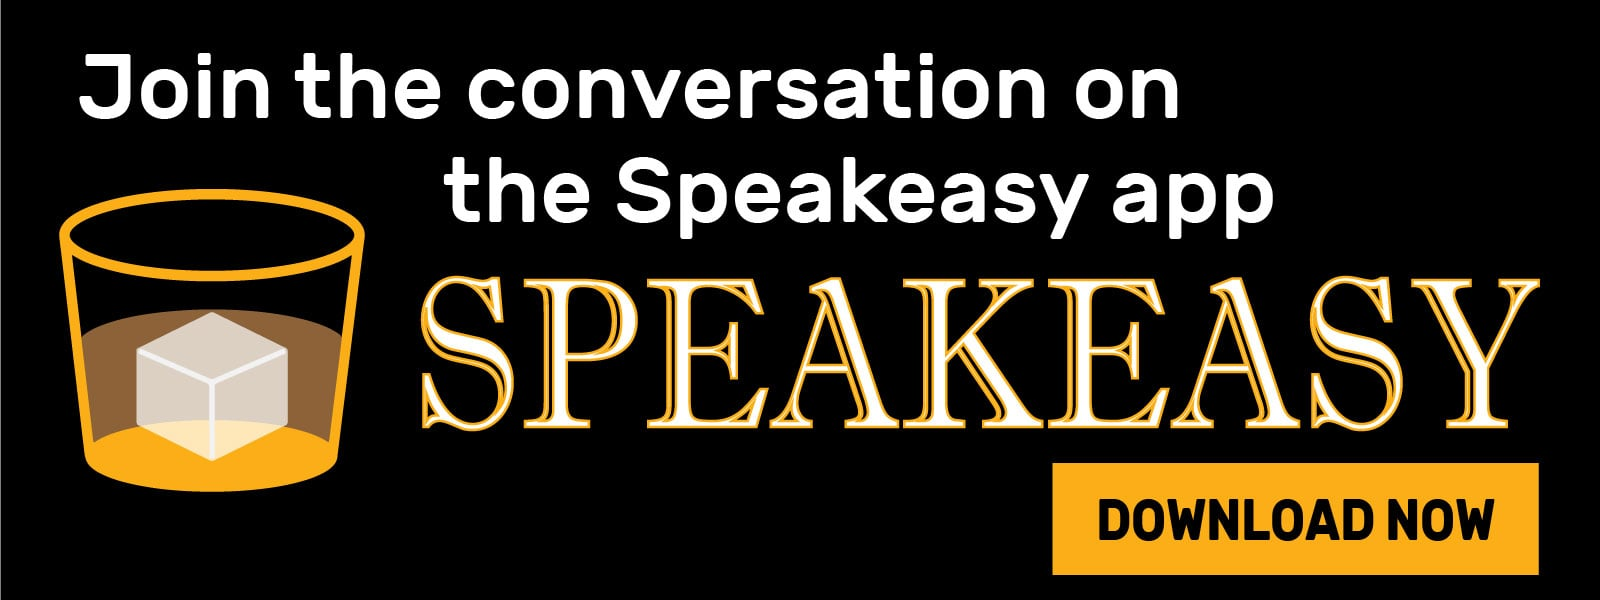 Join the Conversation - Download the Speakeasy App.